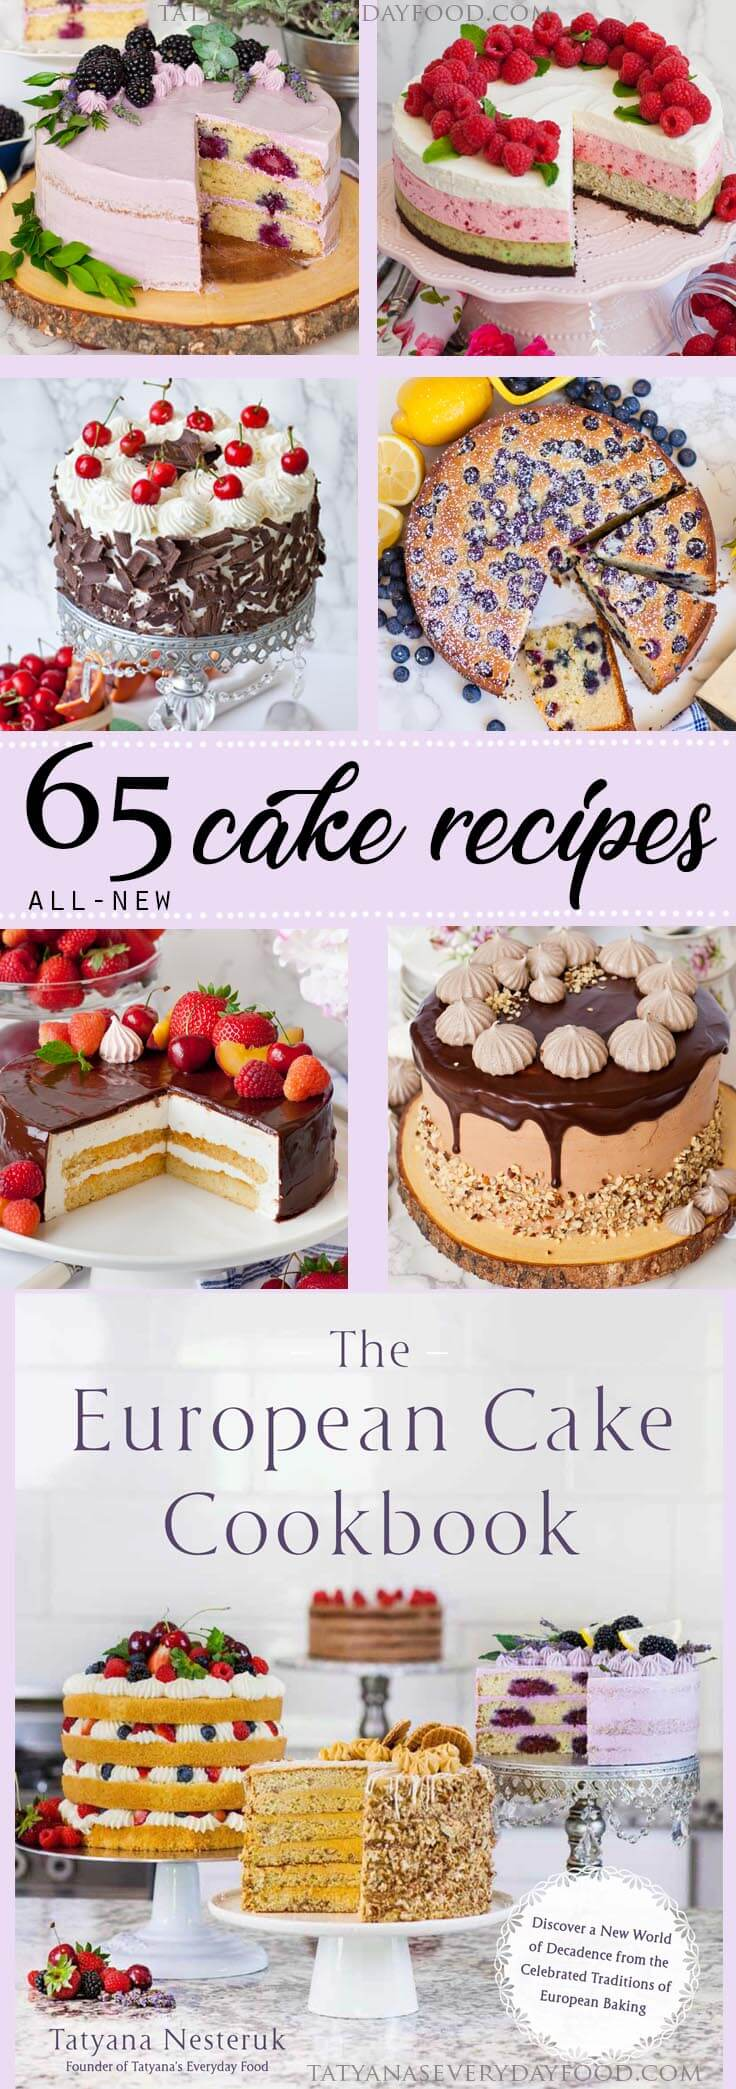 The European Cake Cookbook on sale now!